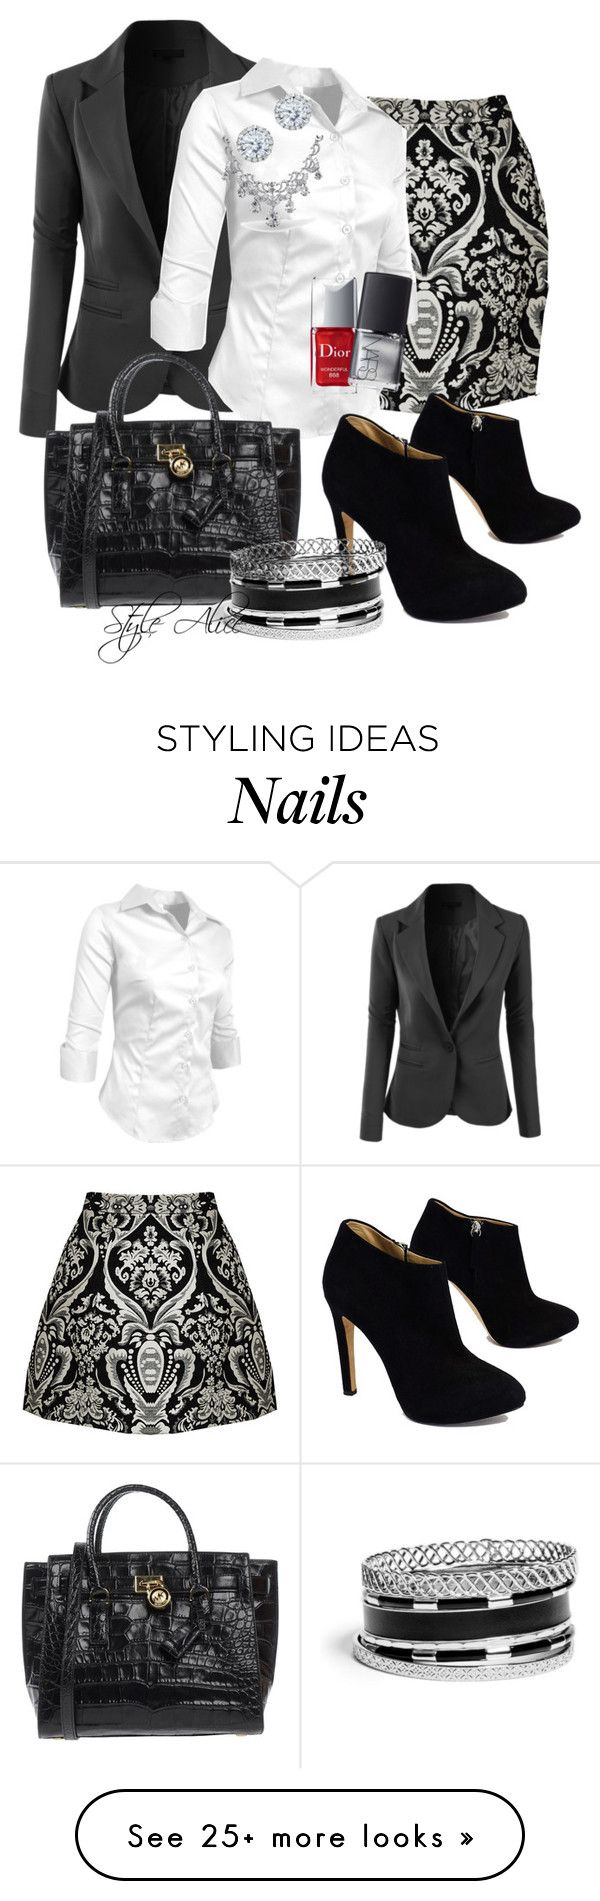 """""""Casual"""" by alice-fortuna on Polyvore featuring Alice + Olivia, LE3NO, MICHAEL Michael Kors, Giuseppe Zanotti, Kobelli, Bling Jewelry, Christian Dior, NARS Cosmetics and GUESS"""